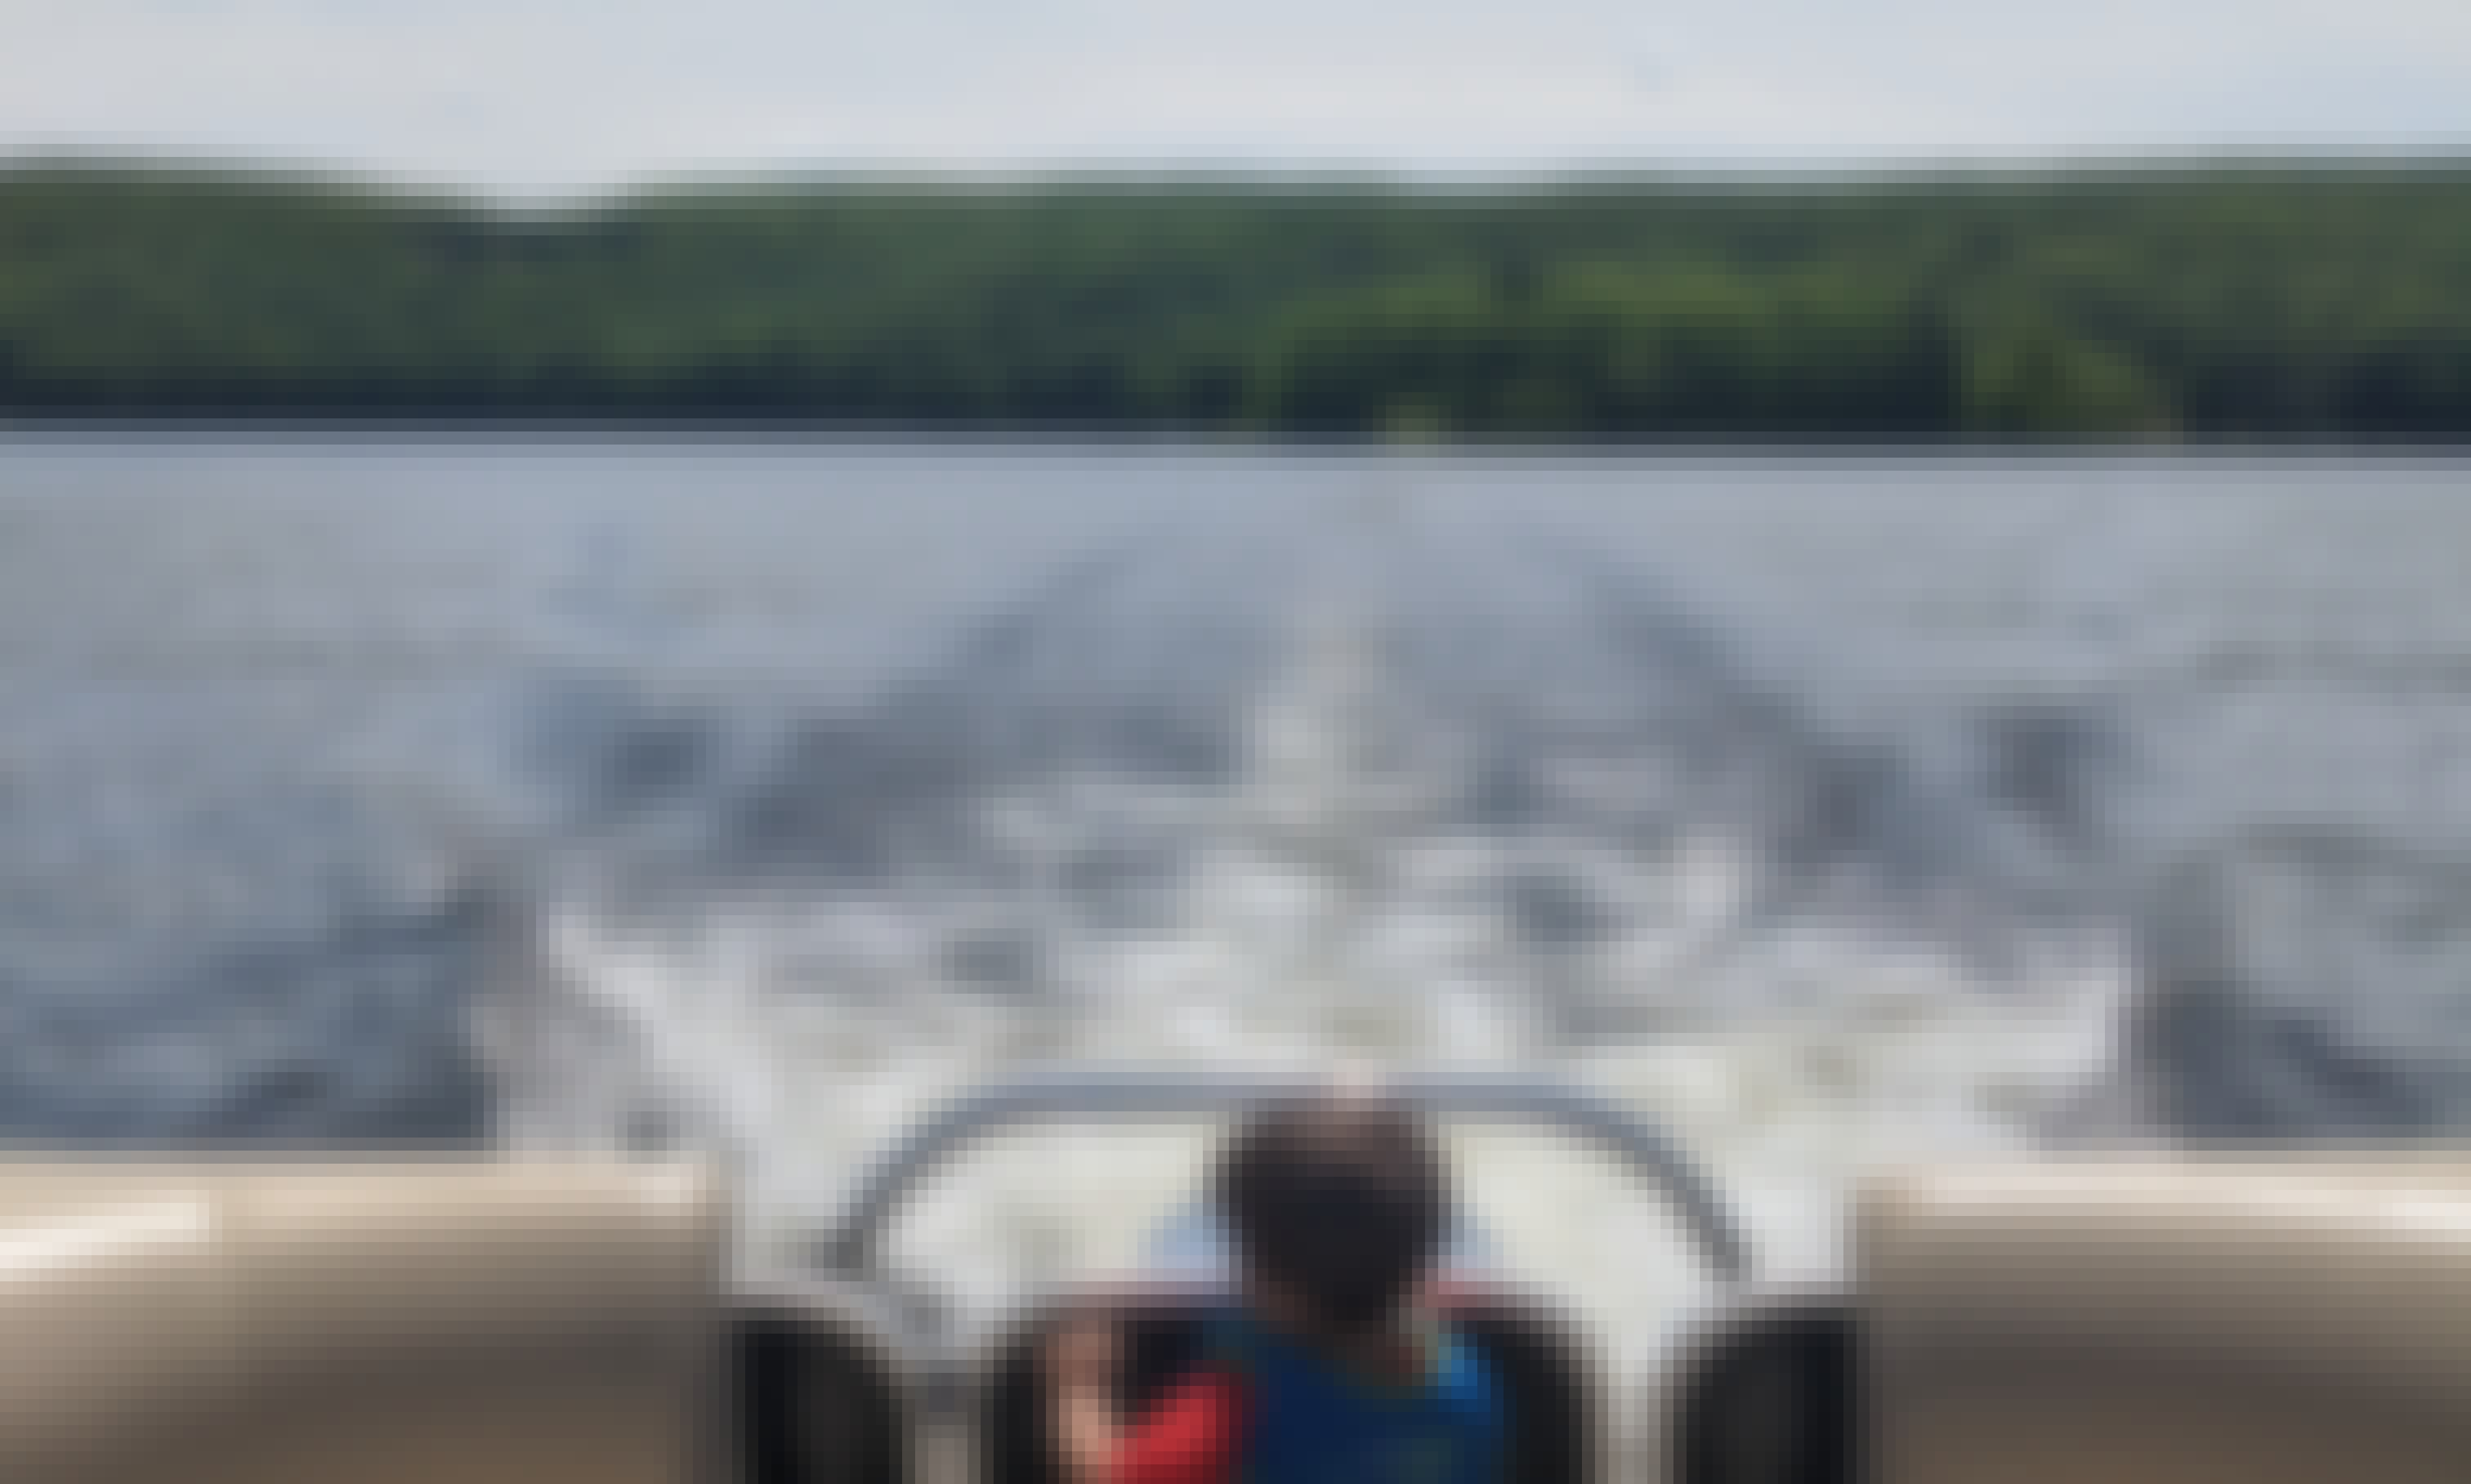 2017 Manitou Pontoon for Rent in Paupack